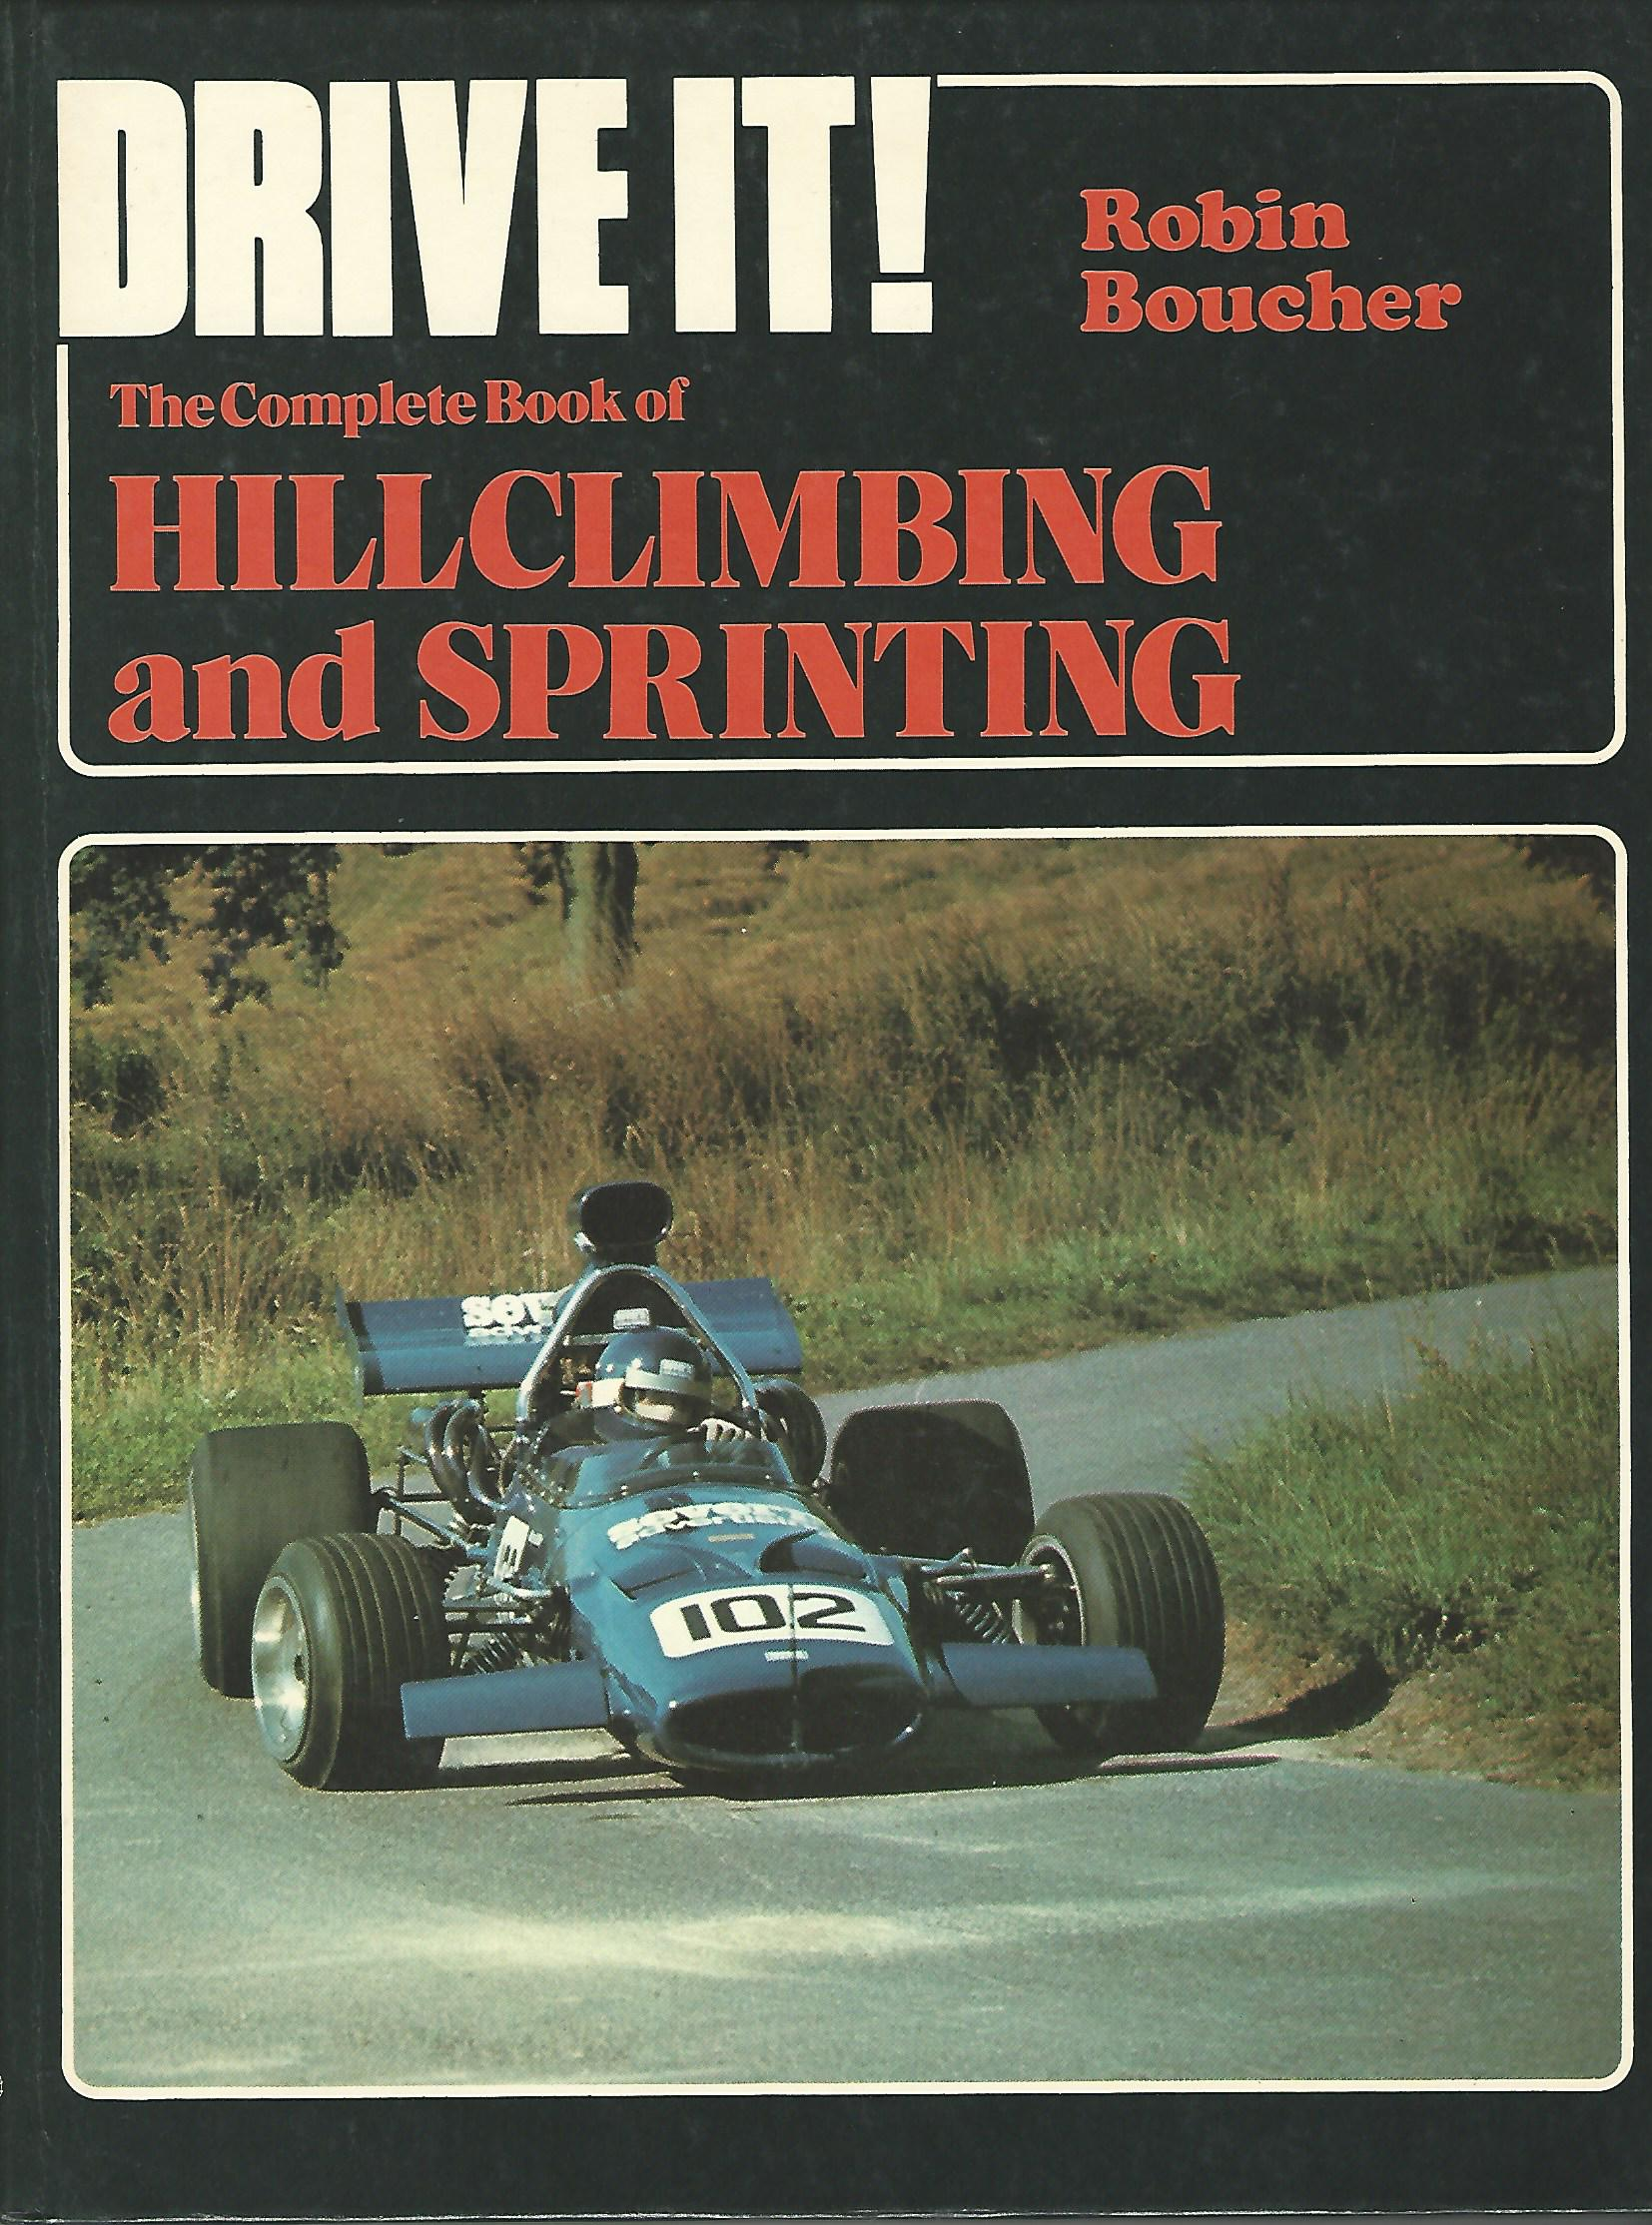 Image for Complete Book of Hill-climbing and Sprinting (Drive it).